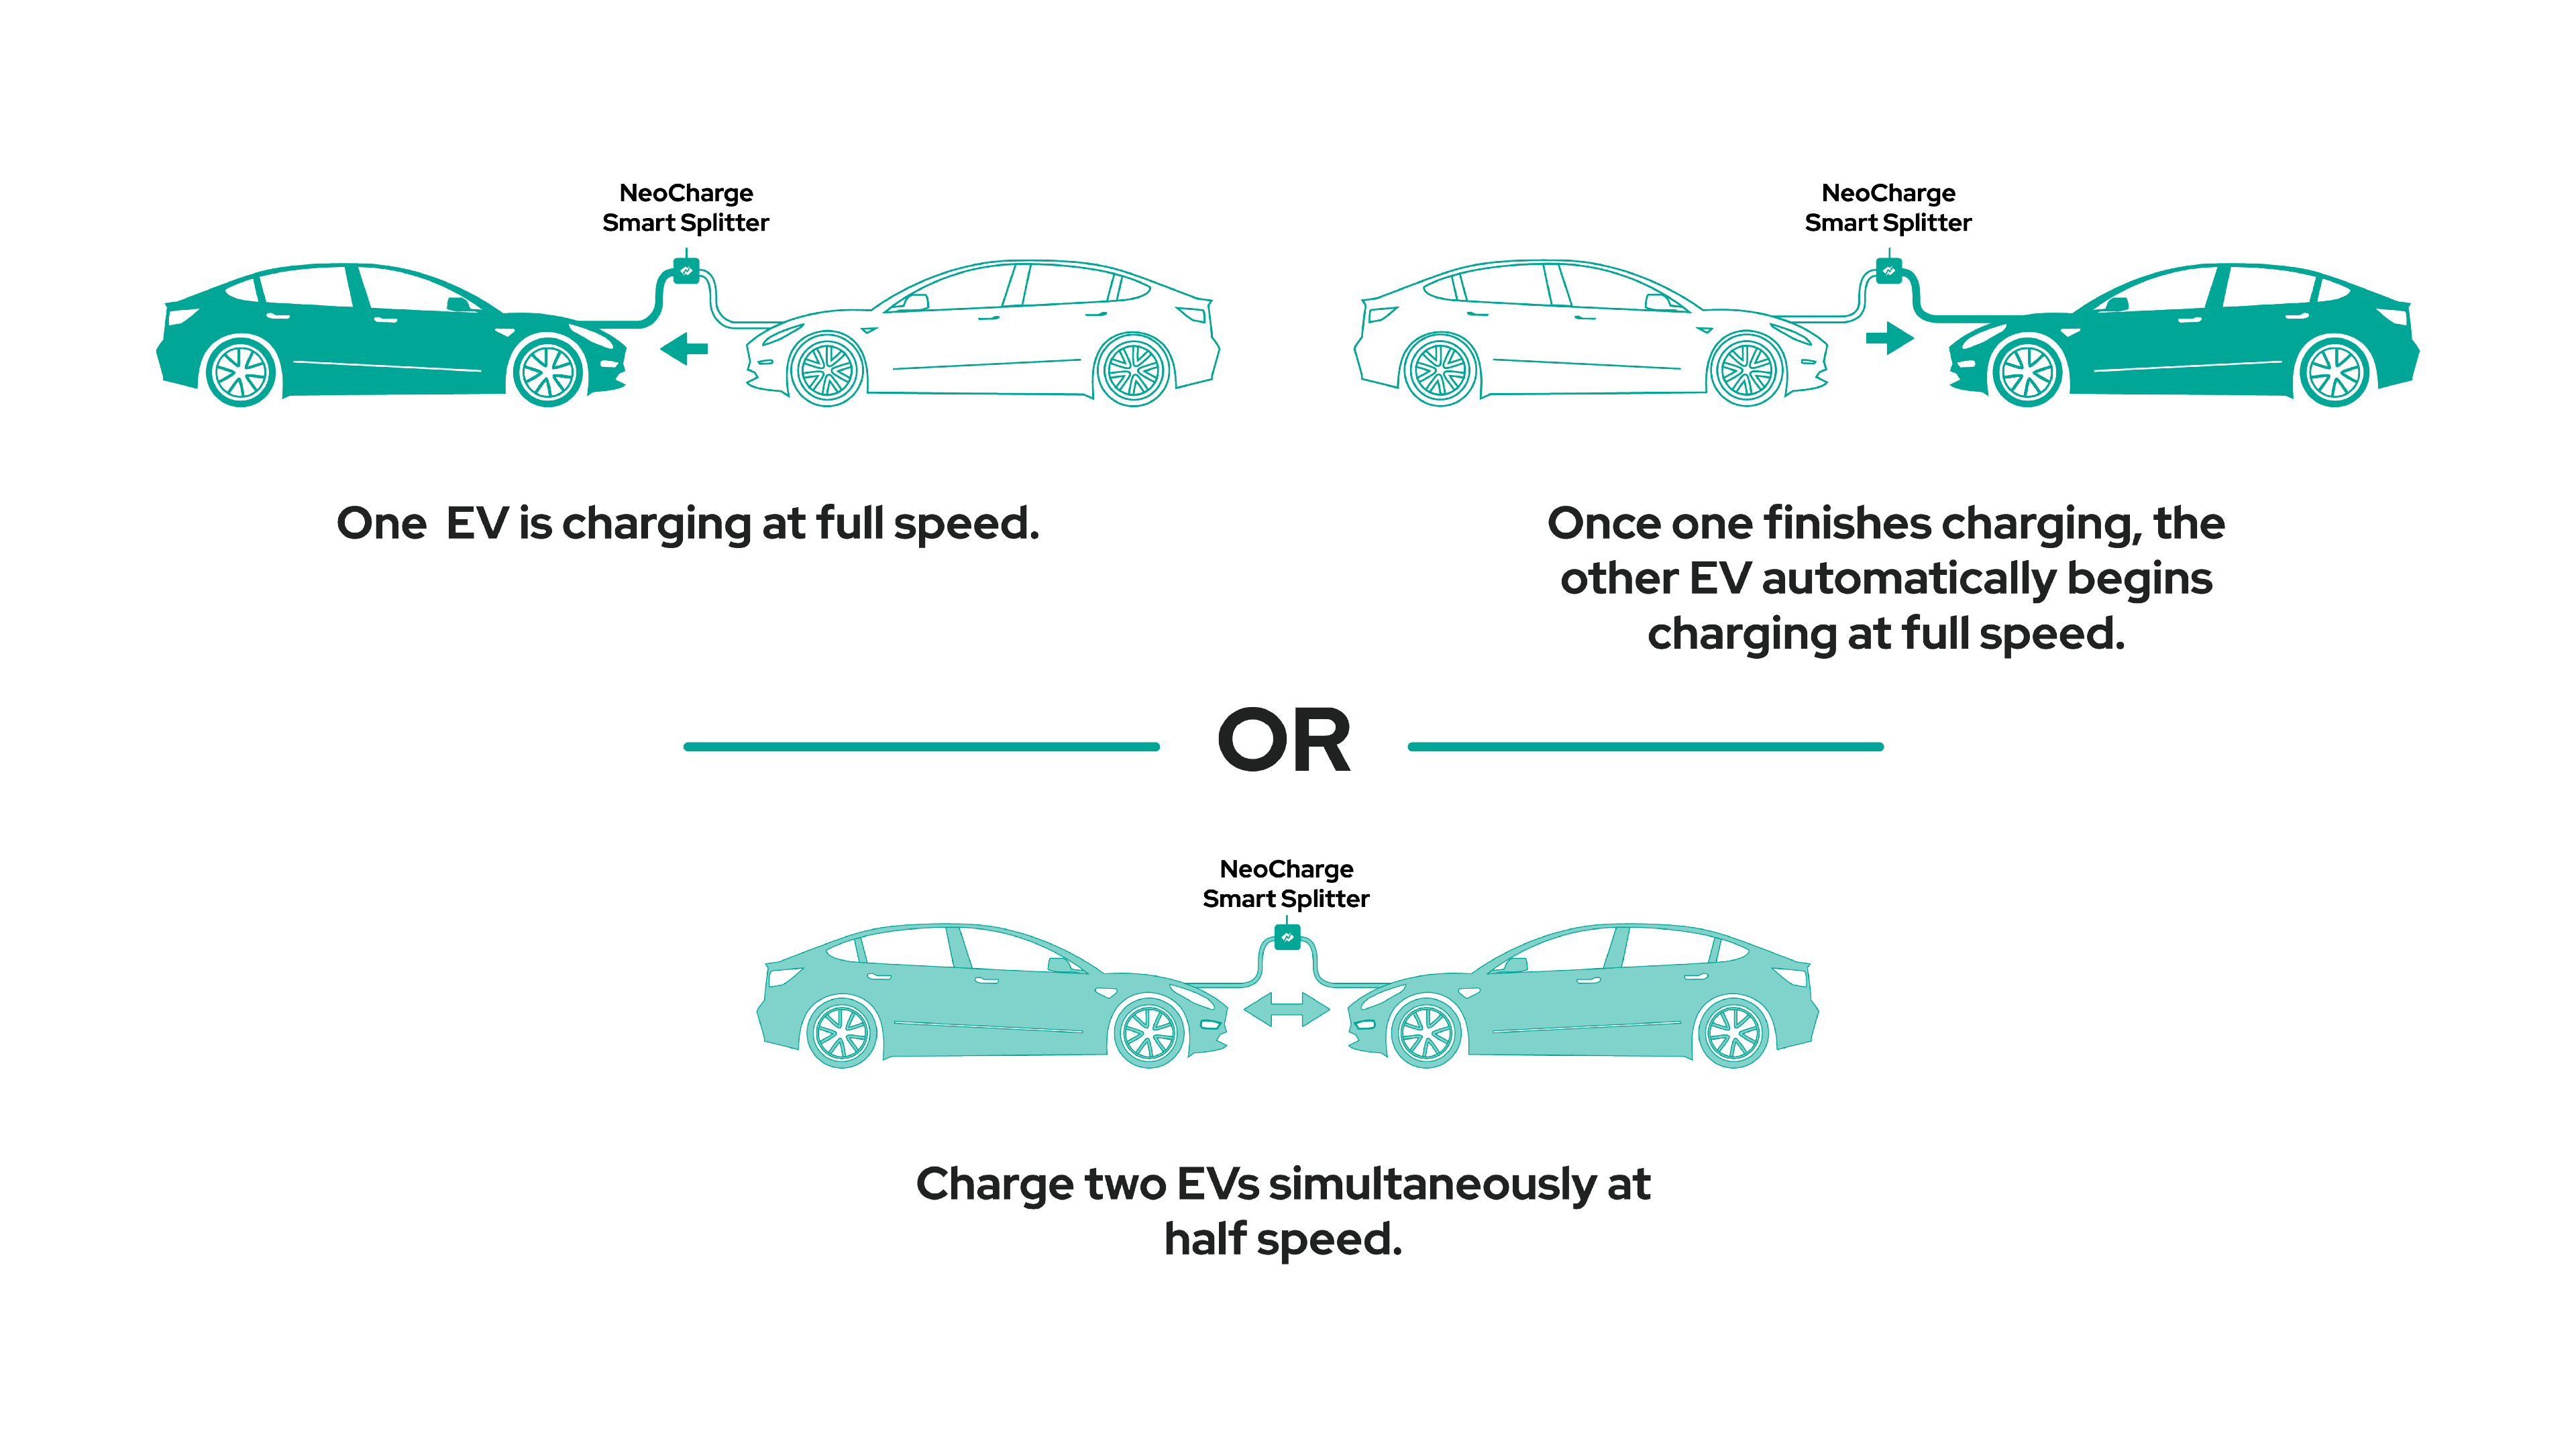 How it works diagram for the dual-car smart splitter